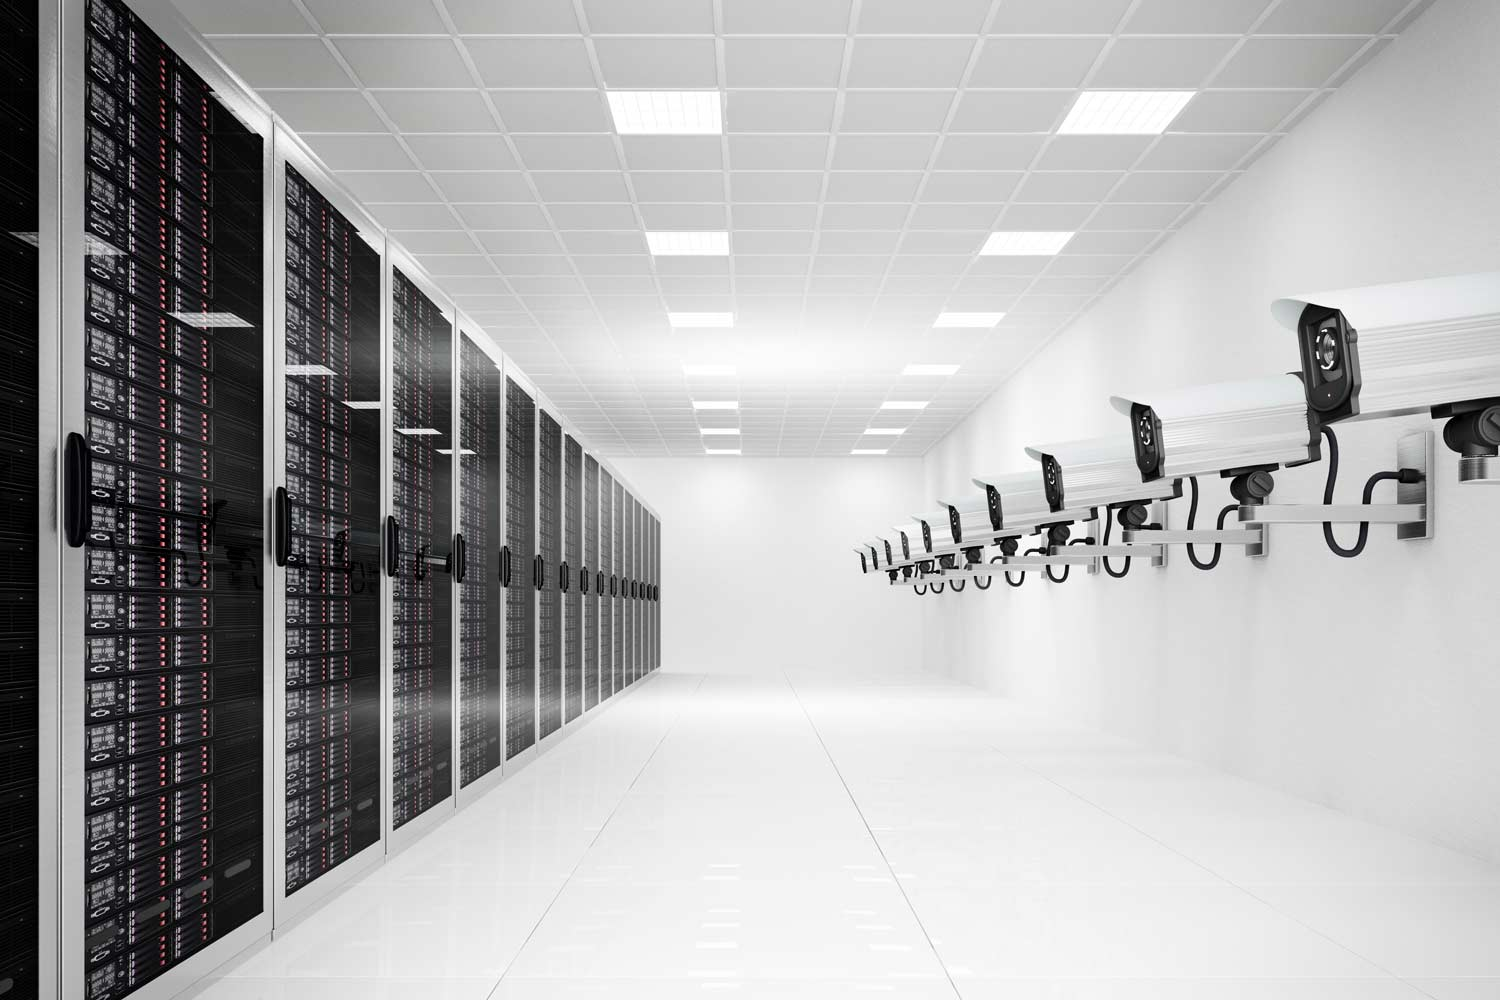 Reducing insider threats with better access control and monitoring